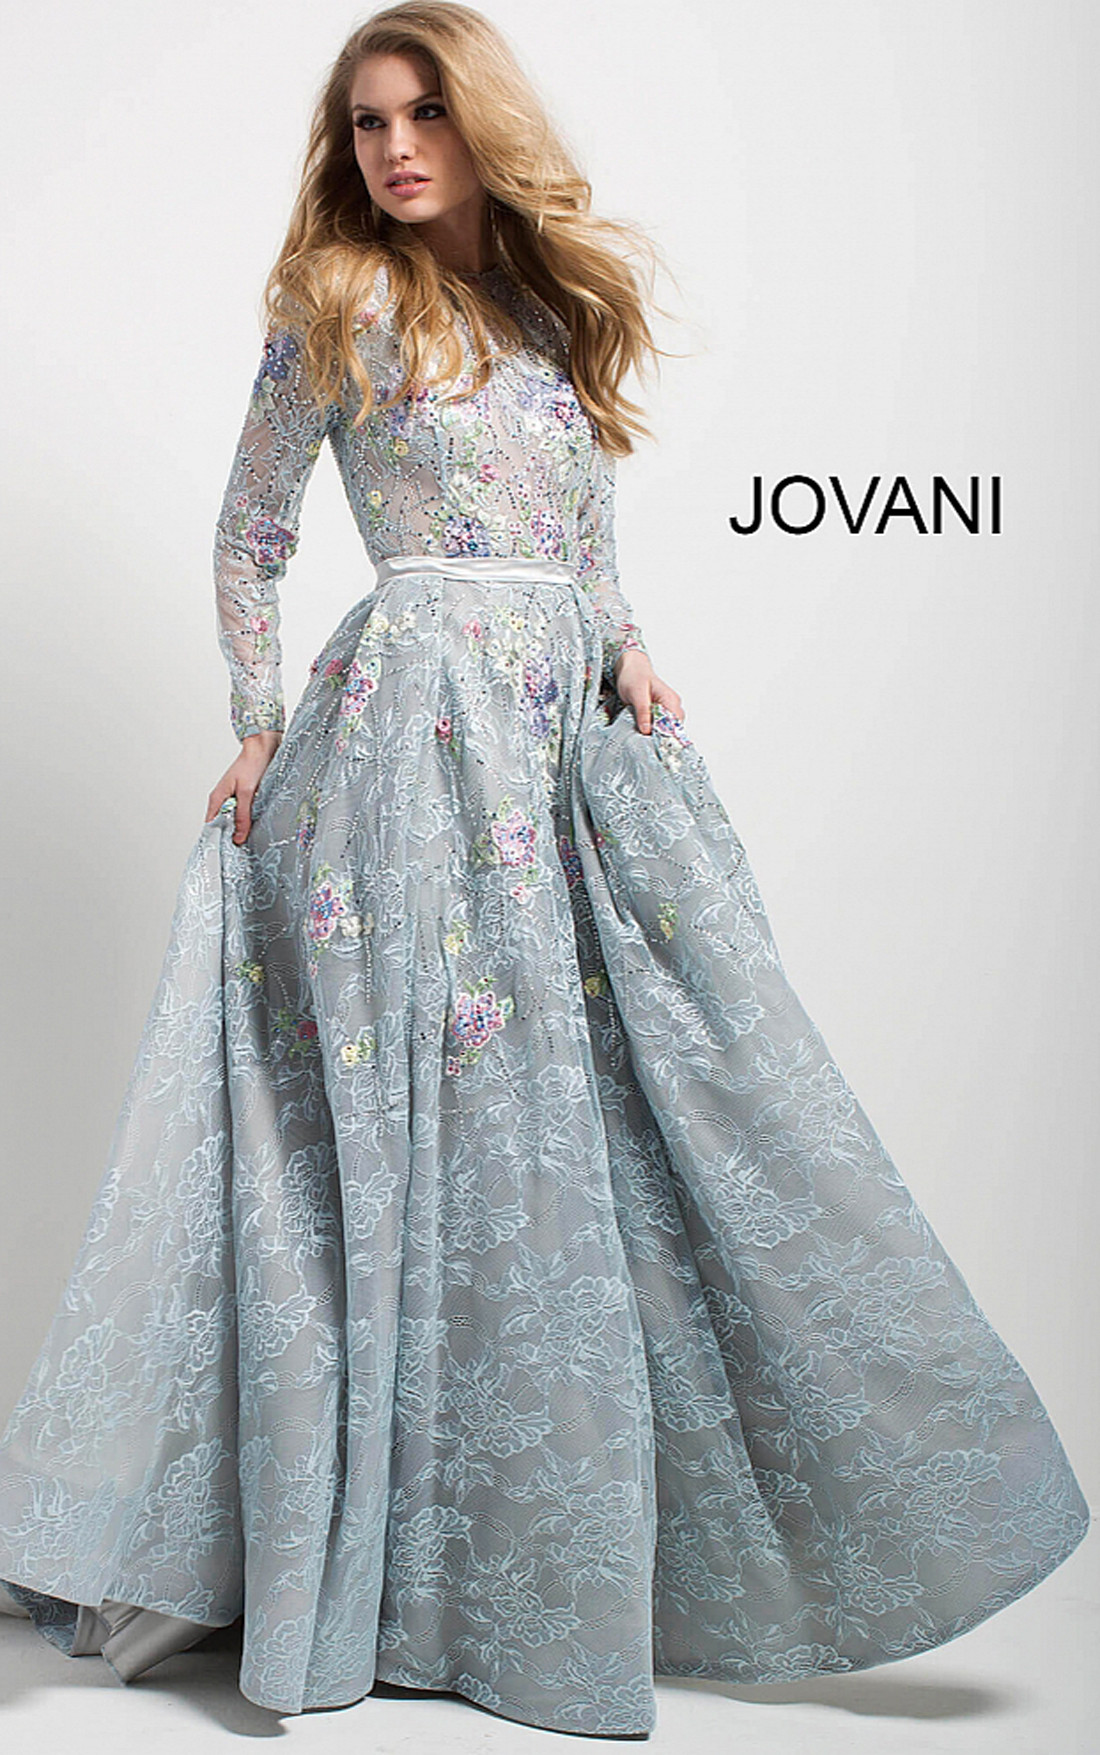 2ab514b914 Jovani - Powder Blue Floral Embroidered Lace Long Sleeve Evening Gown  (54550) ...